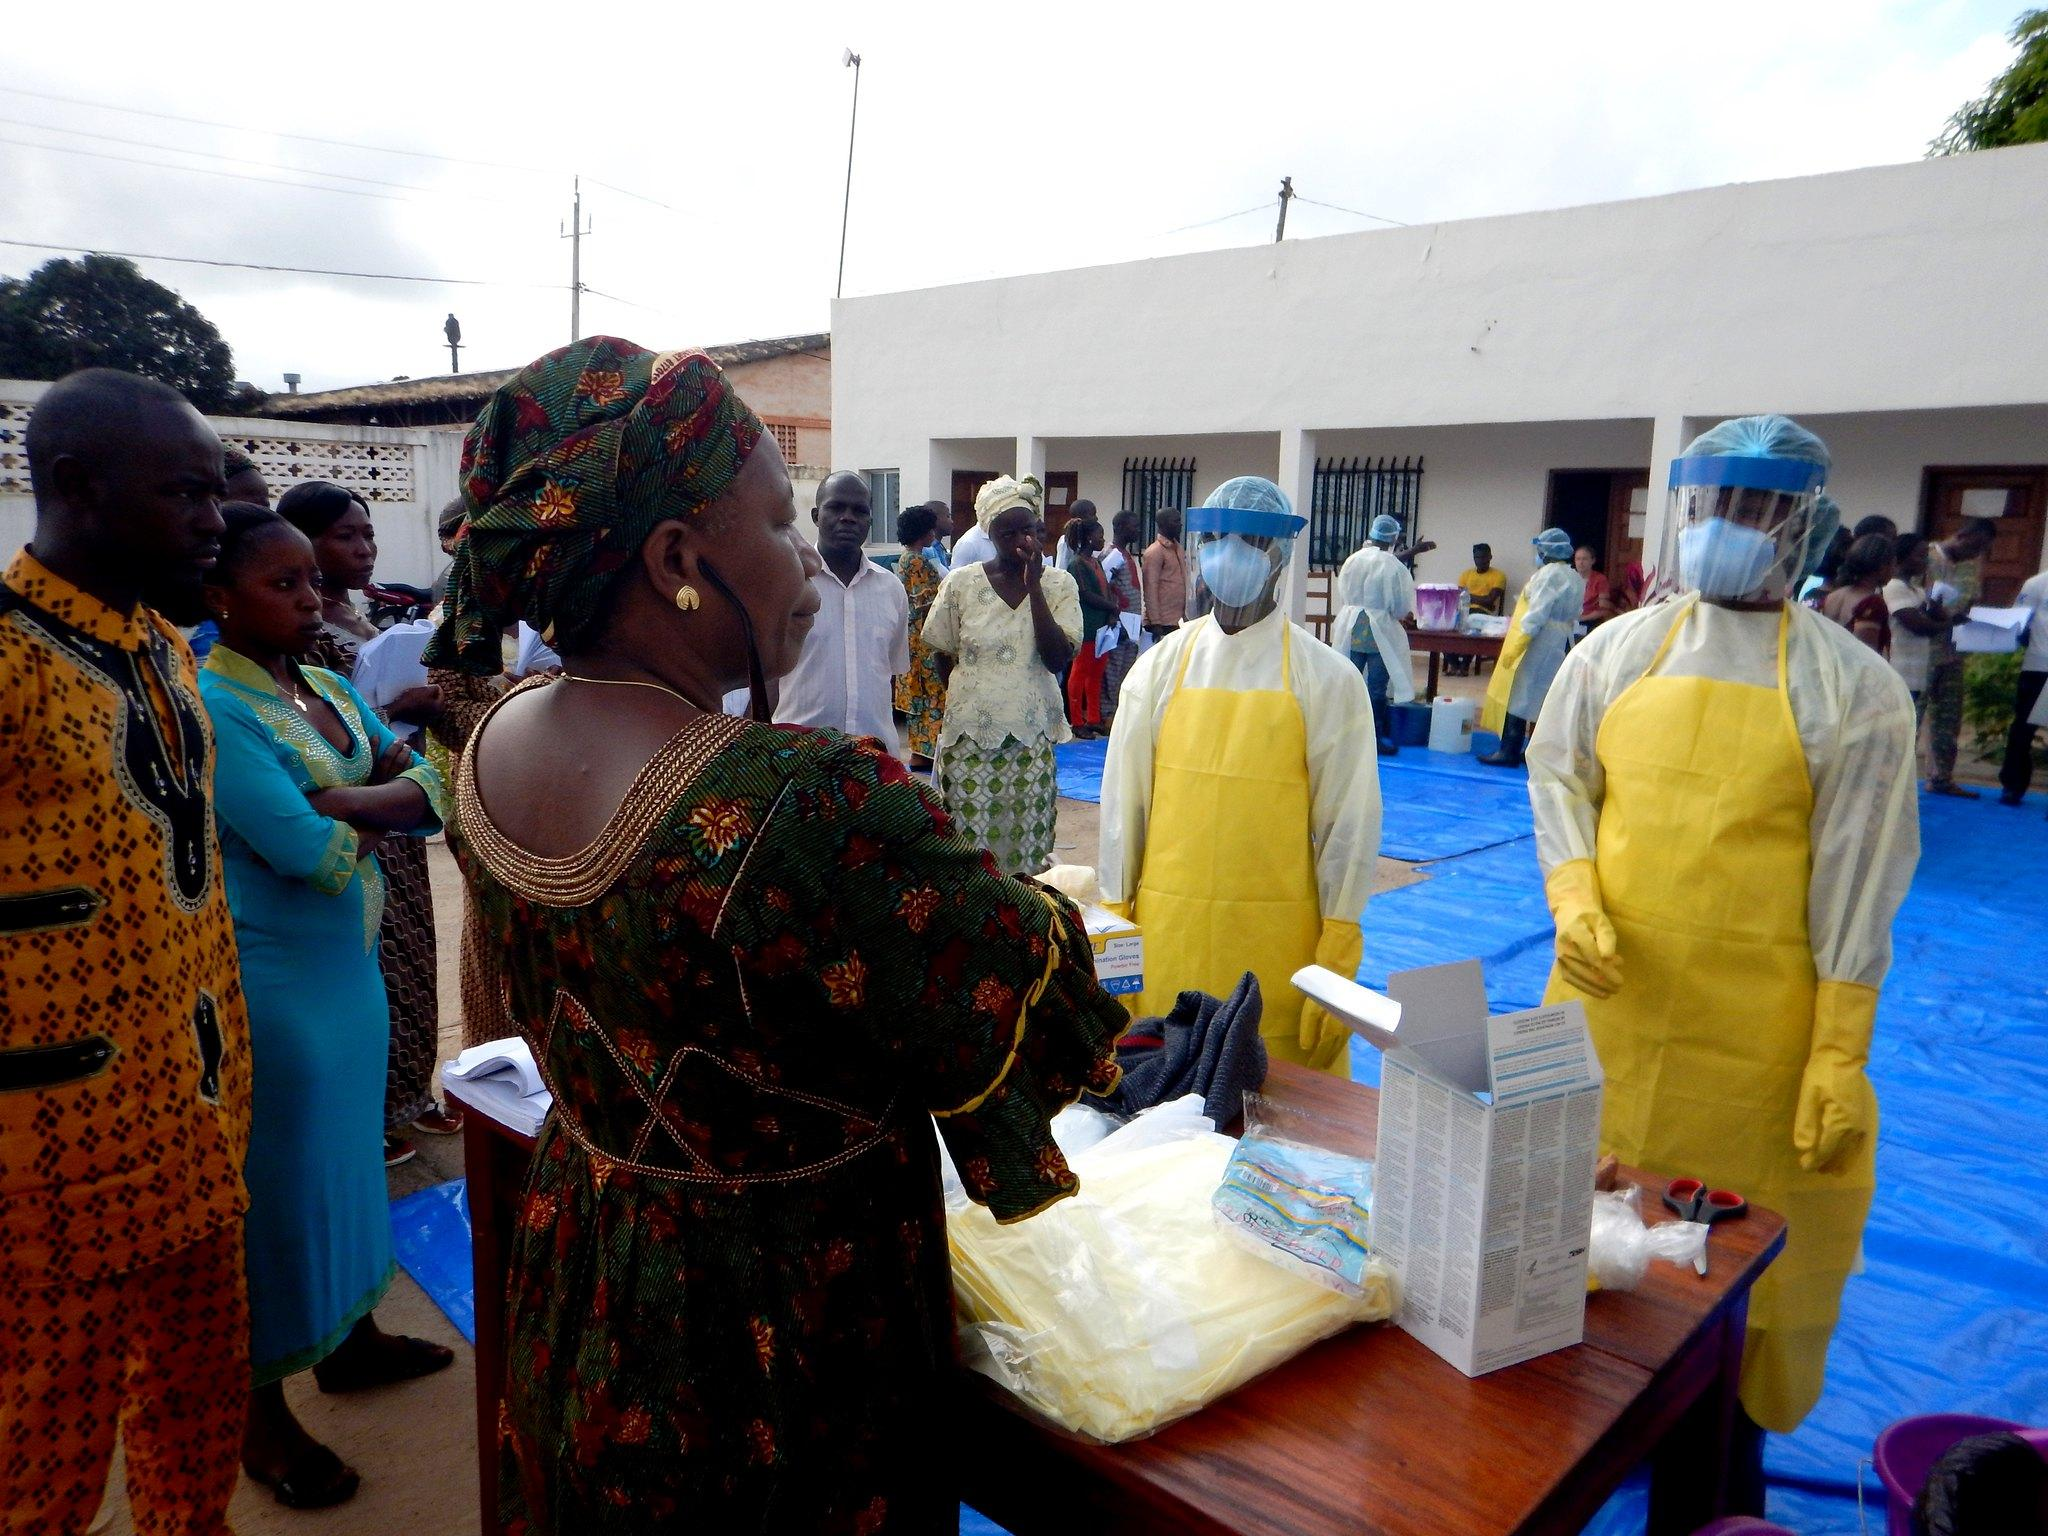 Guinea's frontline healthcare workers receive practical training in identifying, isolating, and caring for Ebola patients.